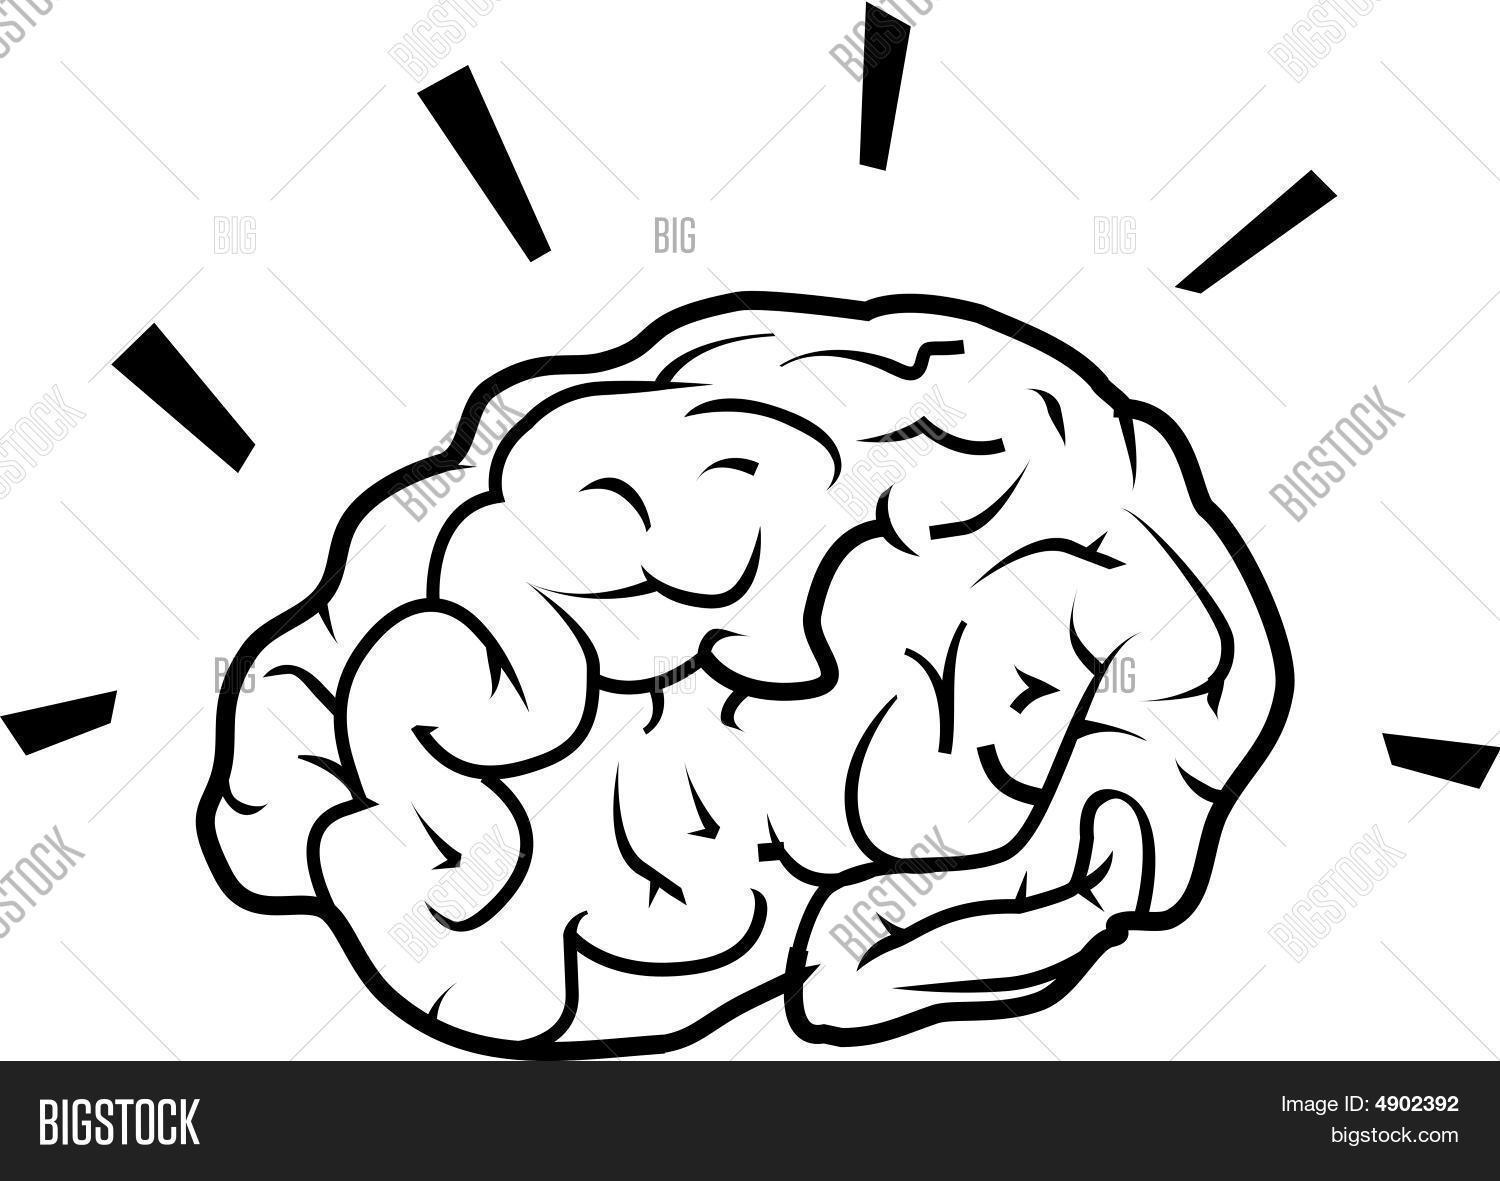 Line Drawing Brain : Brain line drawing vector photo bigstock